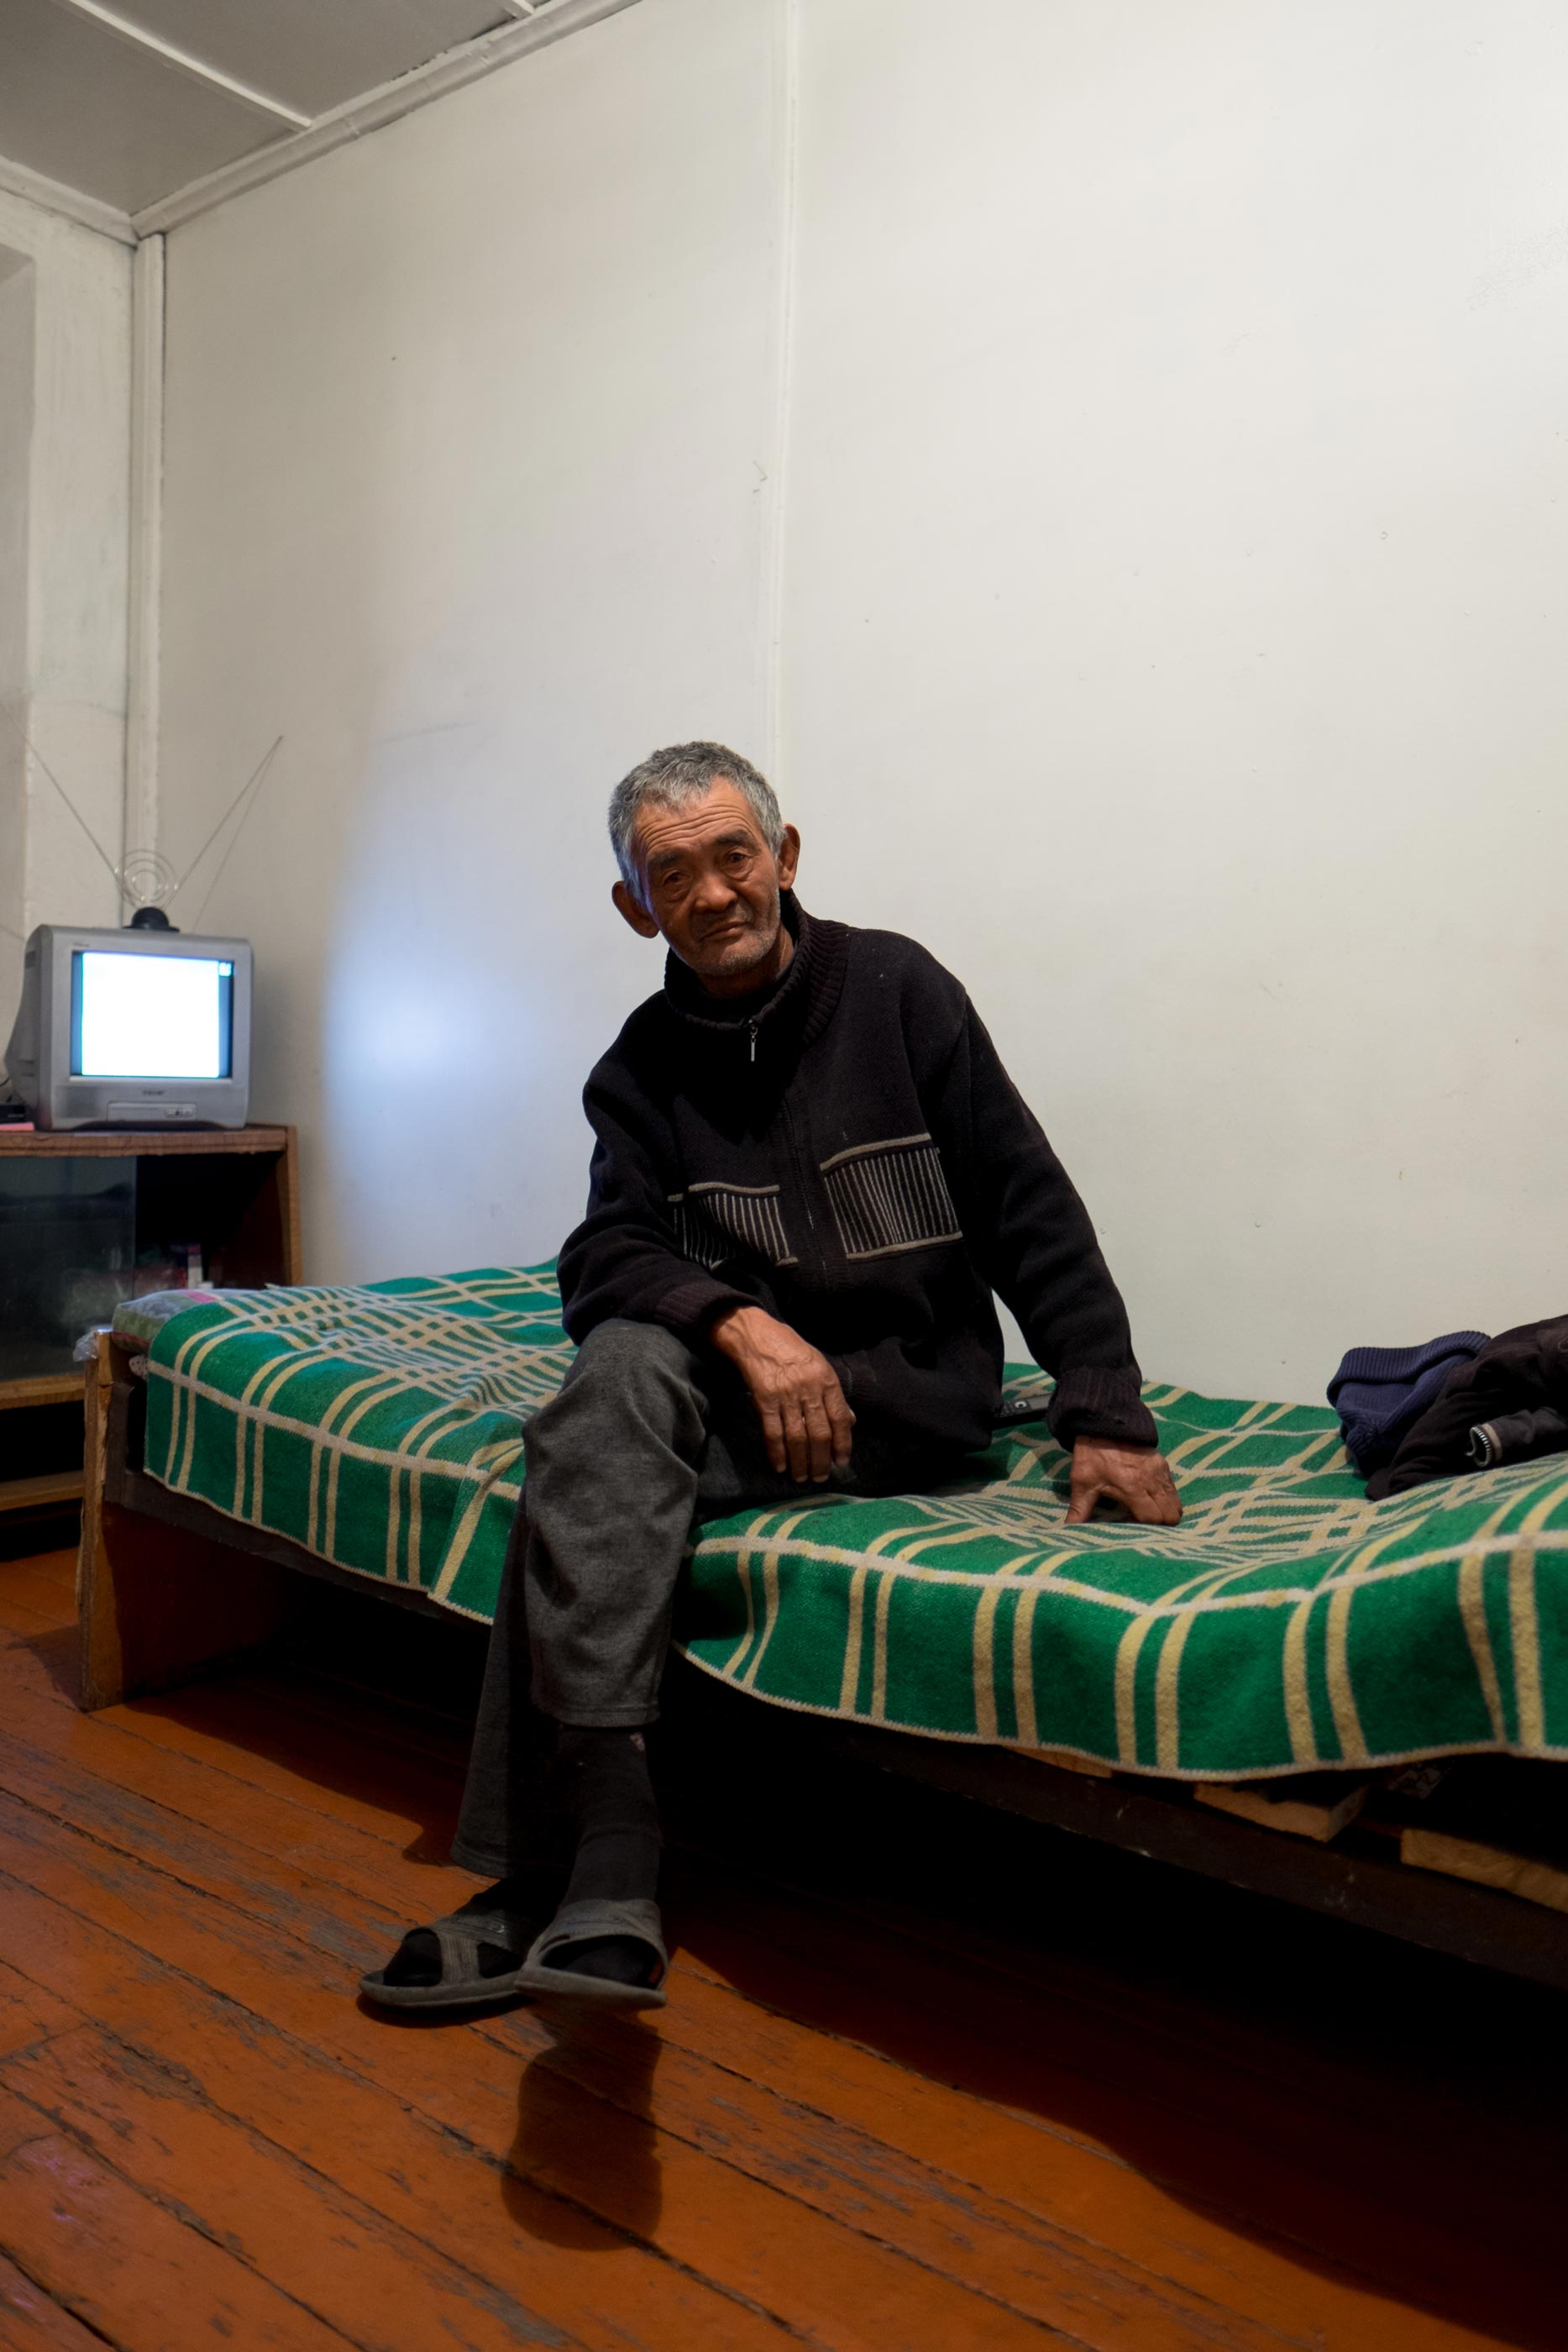 A man sits on a bed in a room in Min Kush, Kyrgyzstan